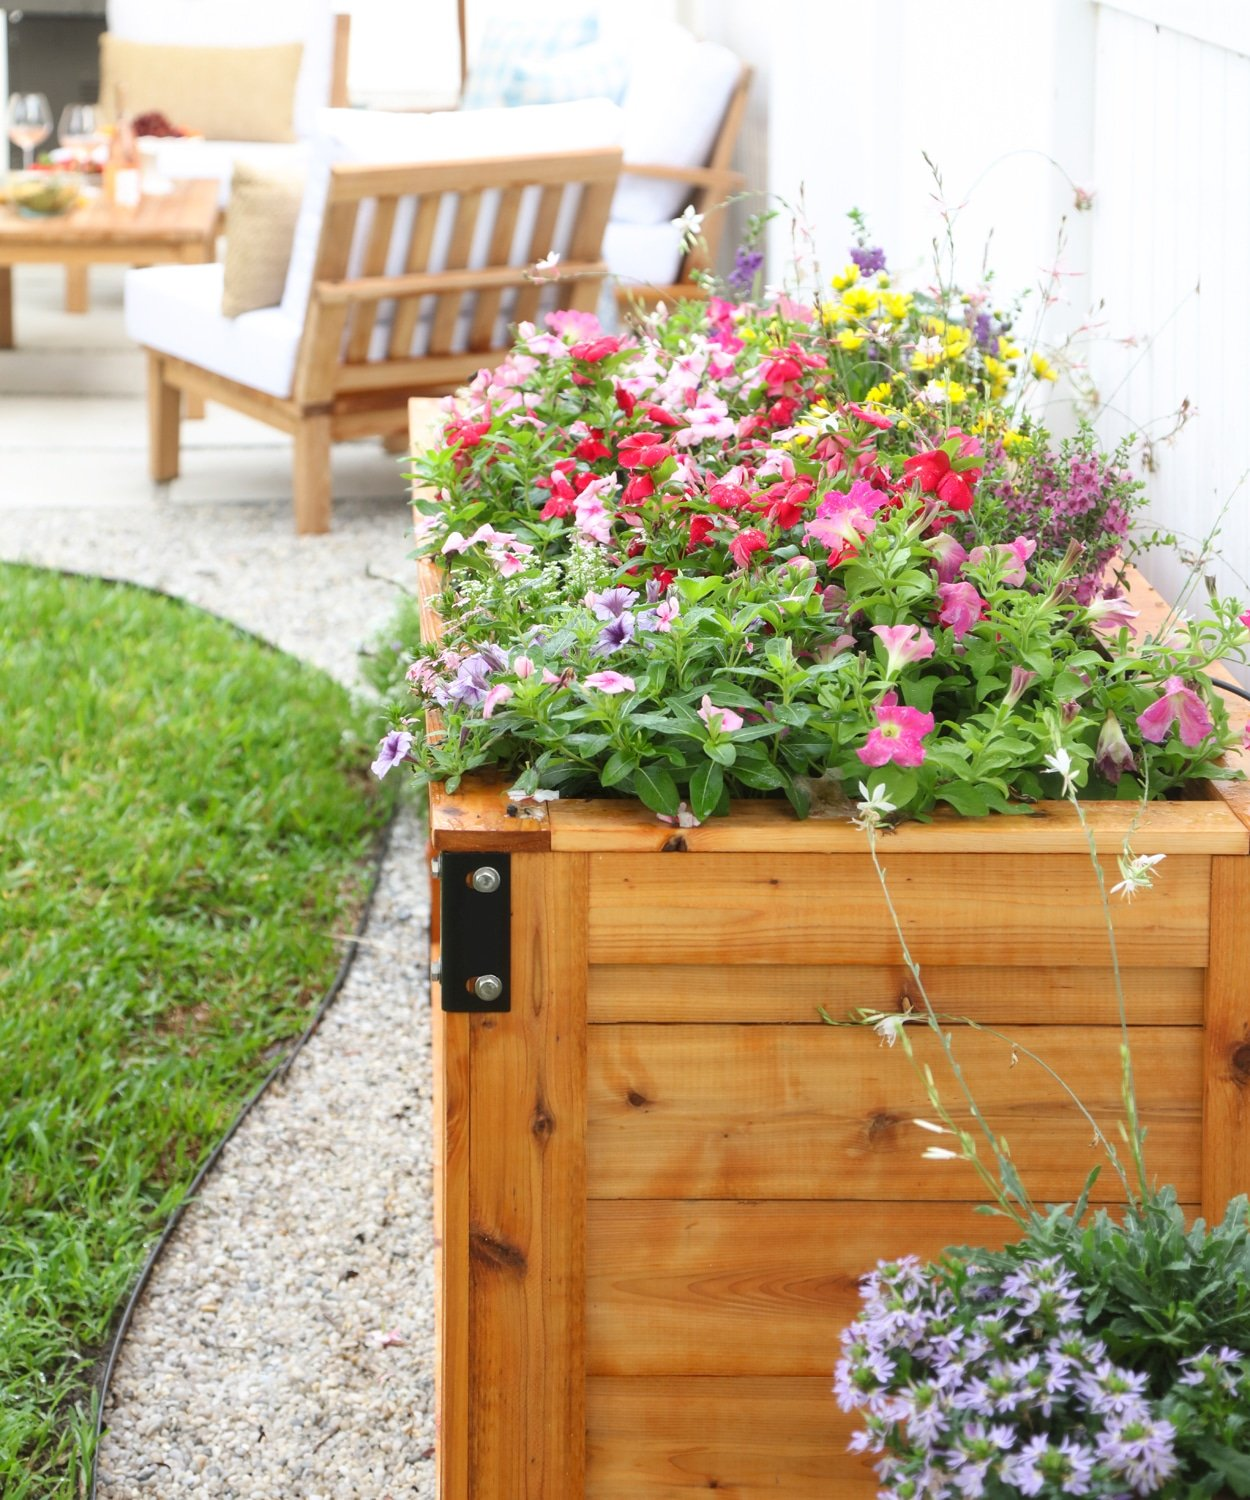 Blogger Ashley Brooke's new DIY planter filled with summer flowers. | www.ashleybrookedesigns.com